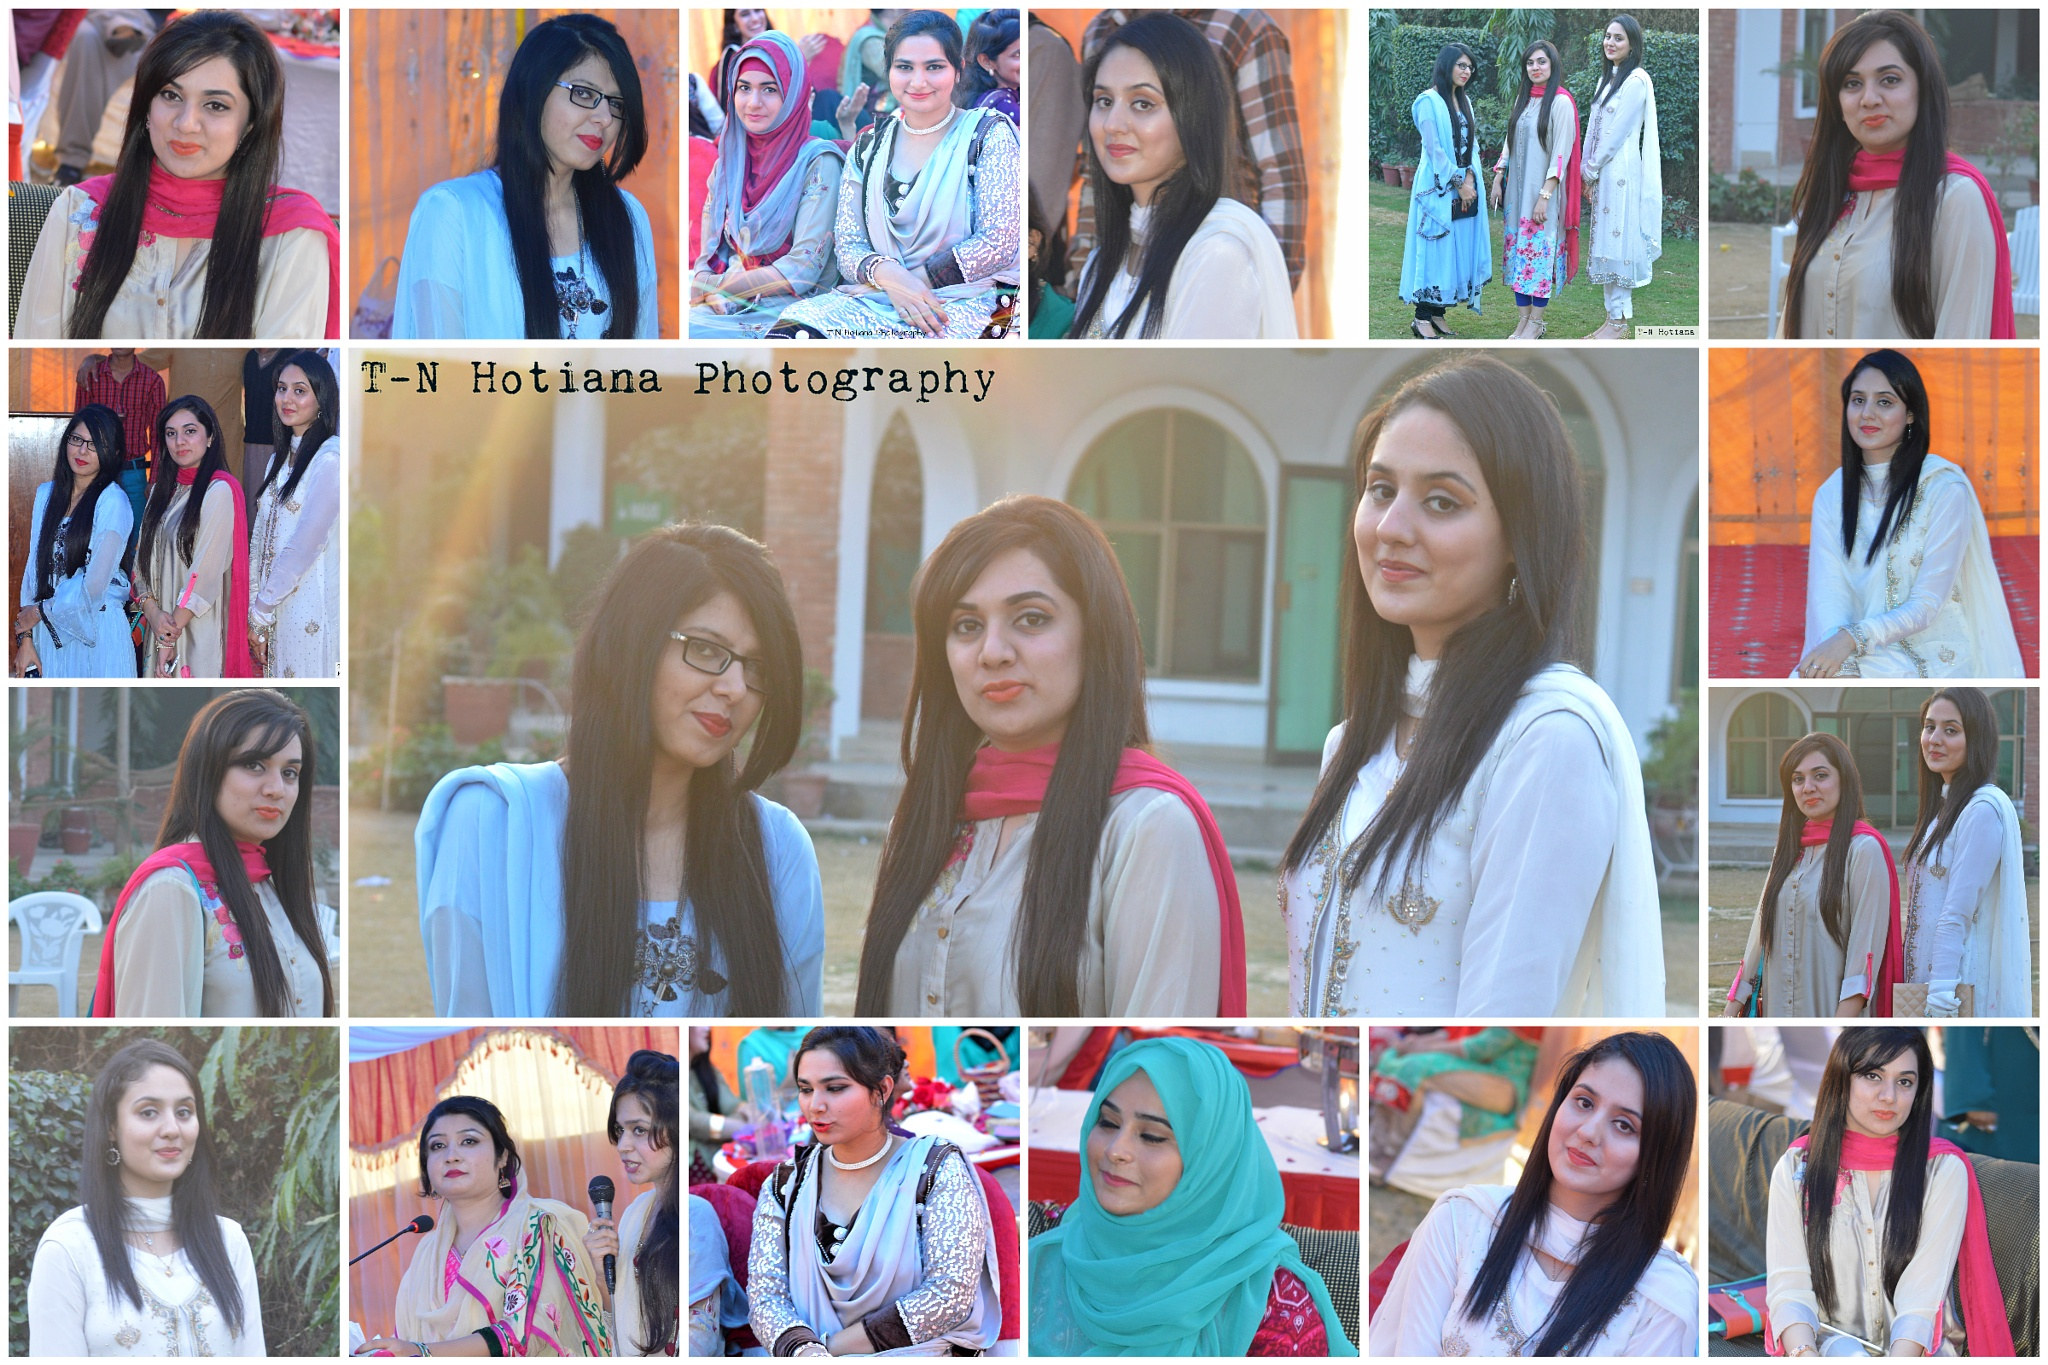 Friens collage by Talha Naseer Hotiana